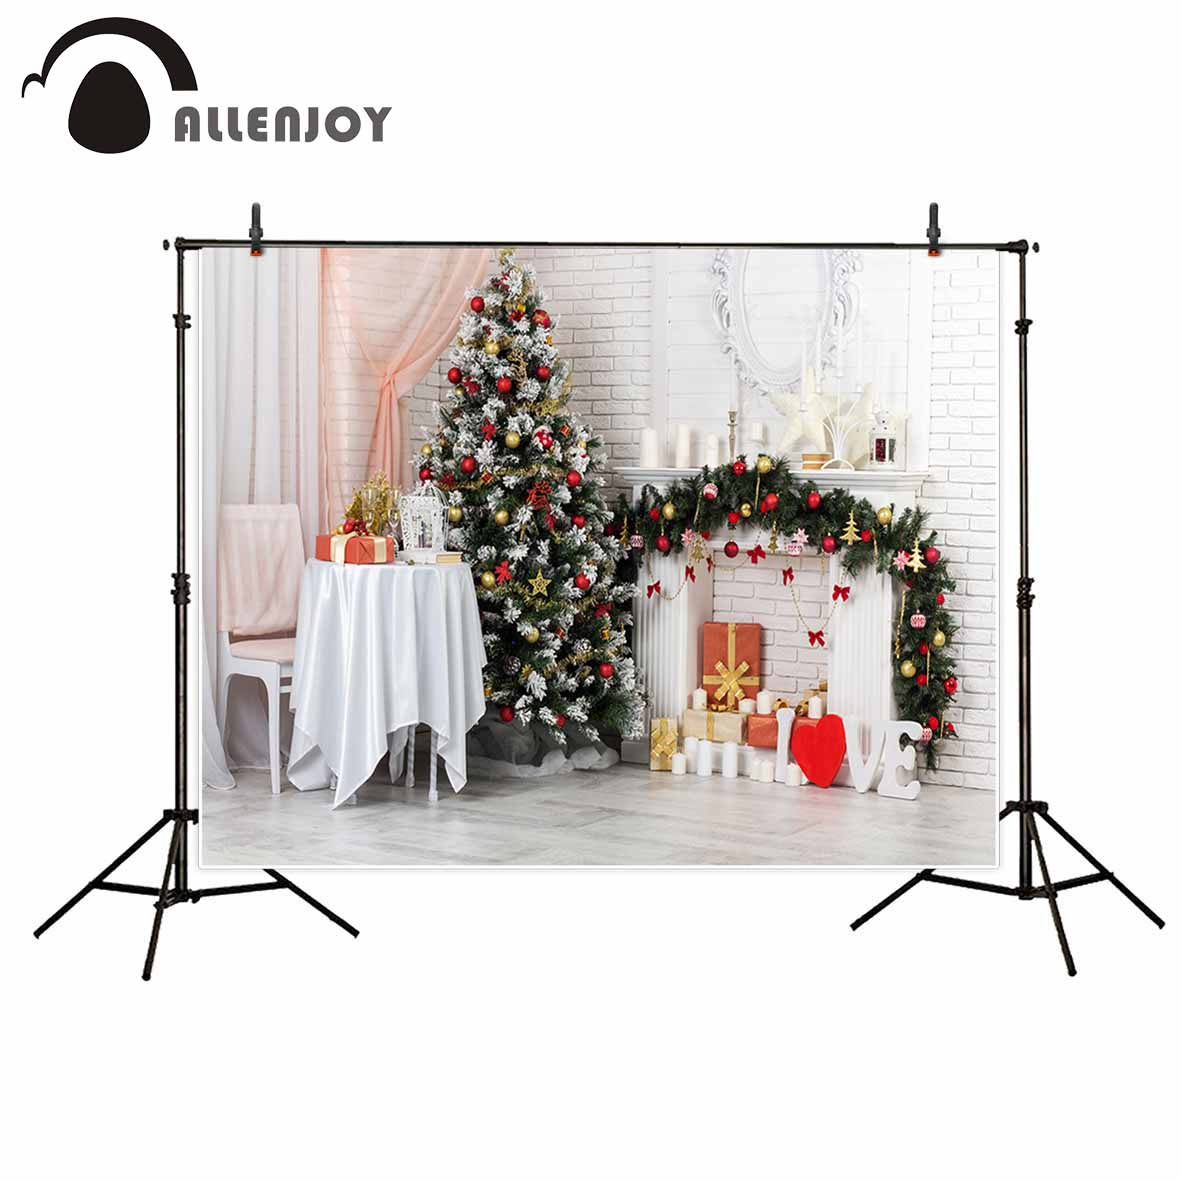 Allenjoy Christmas tree indoor white wall fireplace gift chair stars photo background photography studio funds christmas tree backdrop photography allenjoy wooden carpet fireplace xmas tree background photographic studio vinyl camera